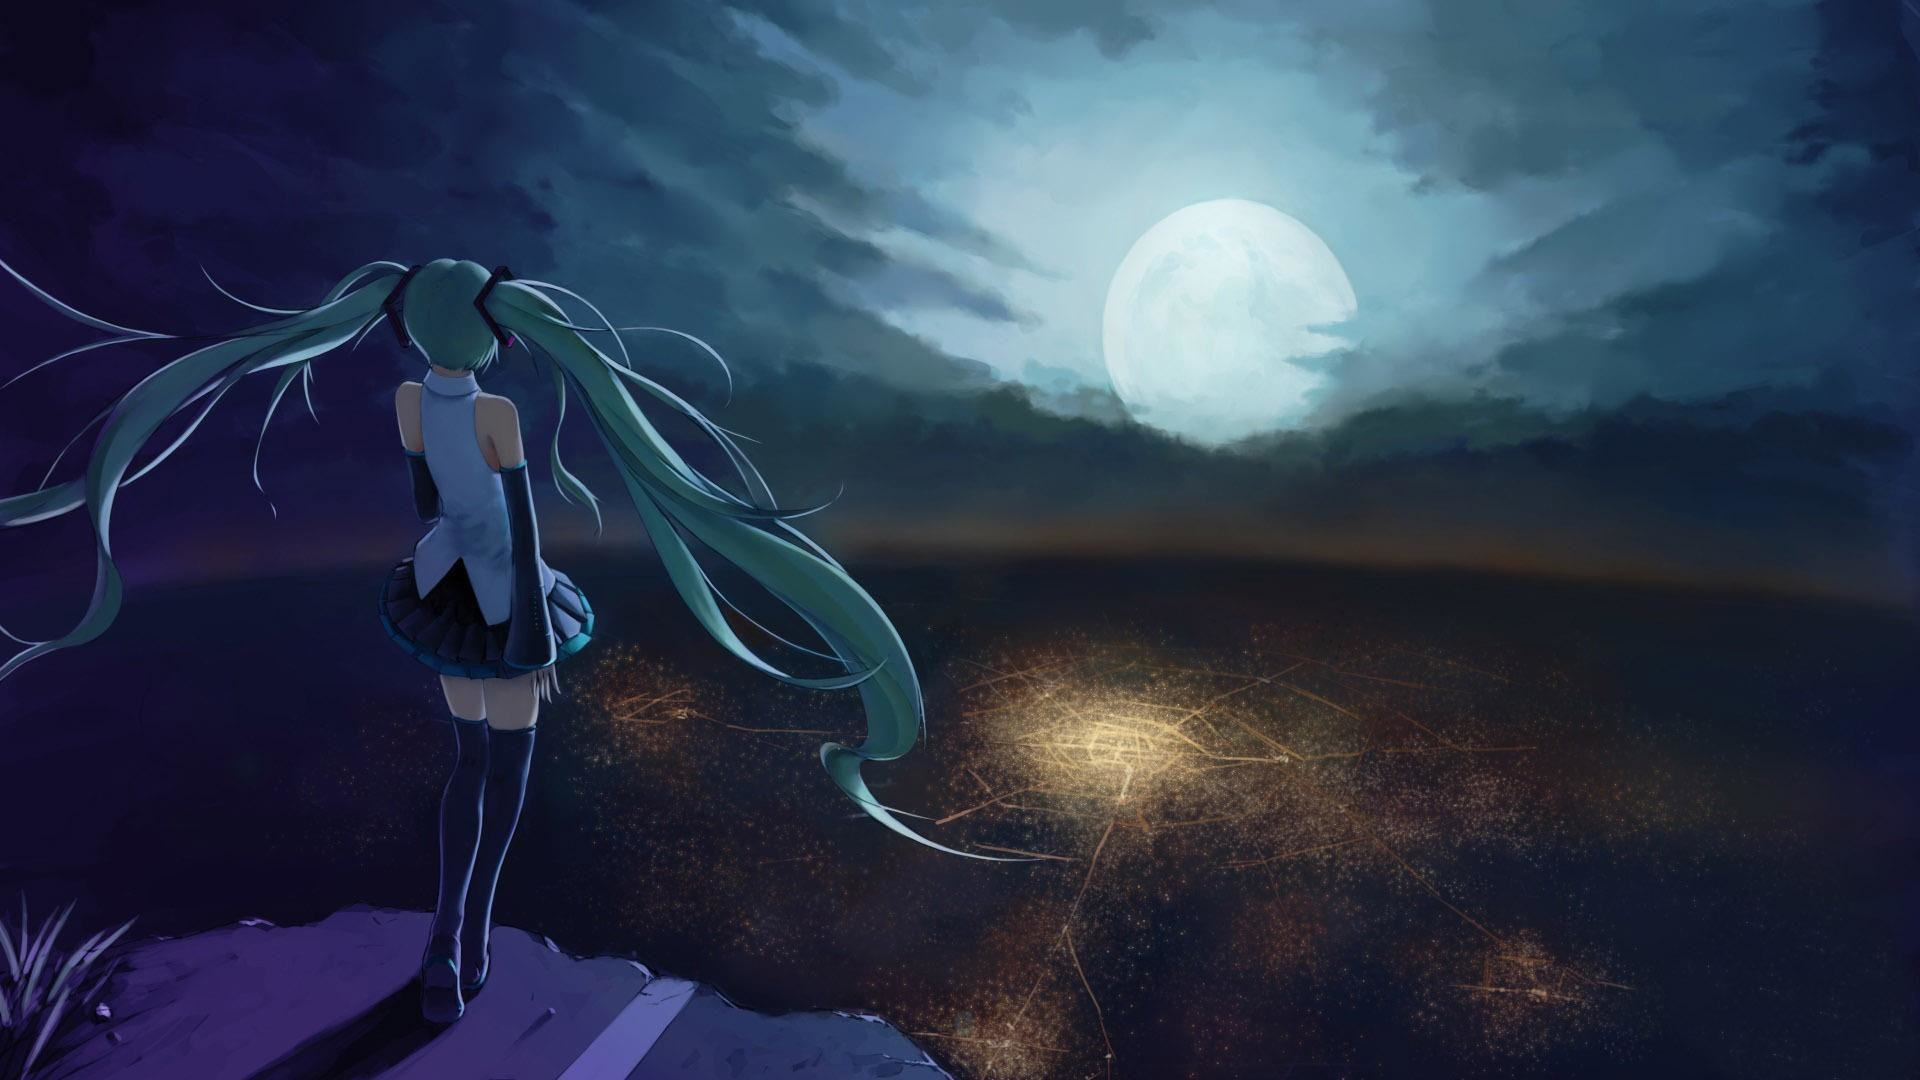 1920x1080 HD Hatsune Miku looking at the moon - Vocaloid Wallpaper